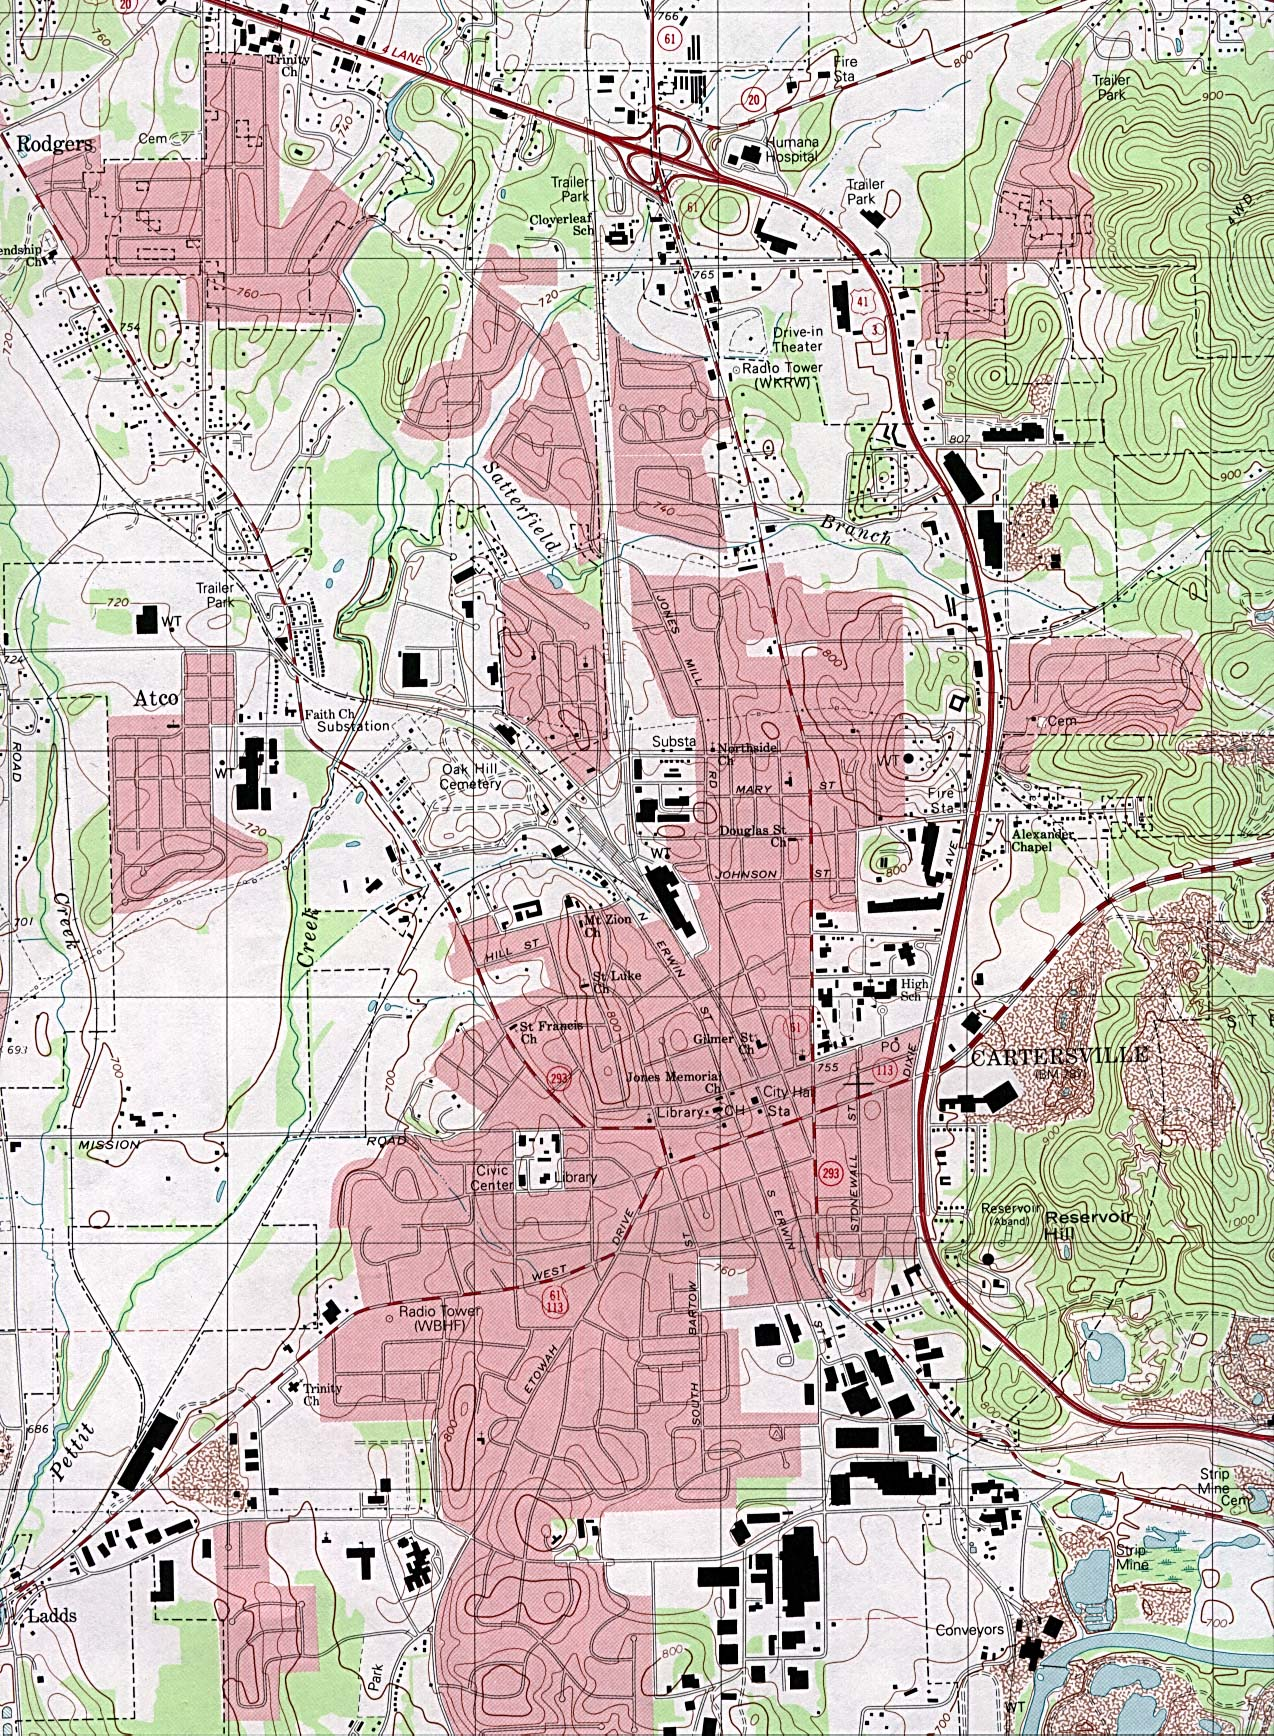 Georgia Maps - Perry-Castañeda Map Collection - UT Liry ... on street map atlanta georgia, street map macon georgia, street map of ridgecrest, street map indianapolis indiana, street map bellevue washington, street map evansville indiana, street map jackson mississippi, street map deland florida, street map columbus ga, street map st. pete beach, street map st. john, street map st. thomas, street map palm bay, street map fort mill, street map south bend indiana, street map augusta georgia, street map of guam, street map norfolk virginia, street map waycross georgia, street map west palm beach florida,